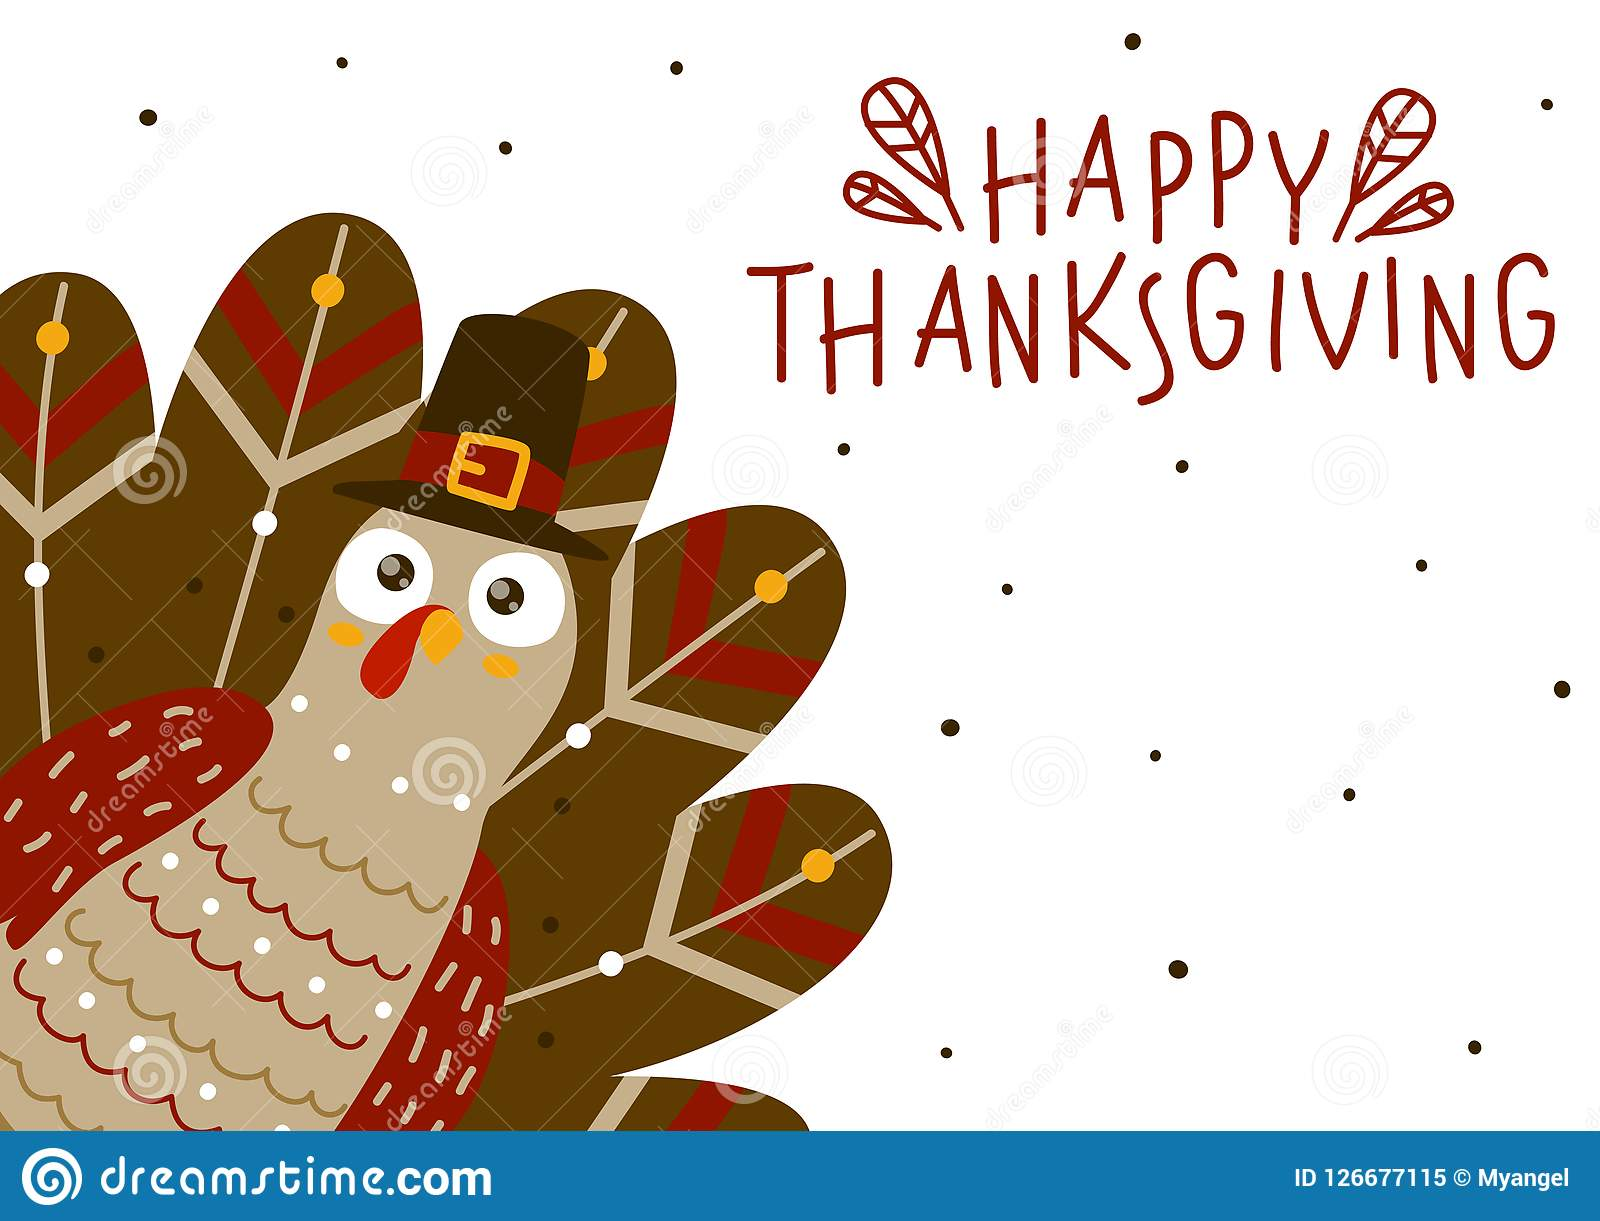 Thanksgiving Humorous greetings pictures